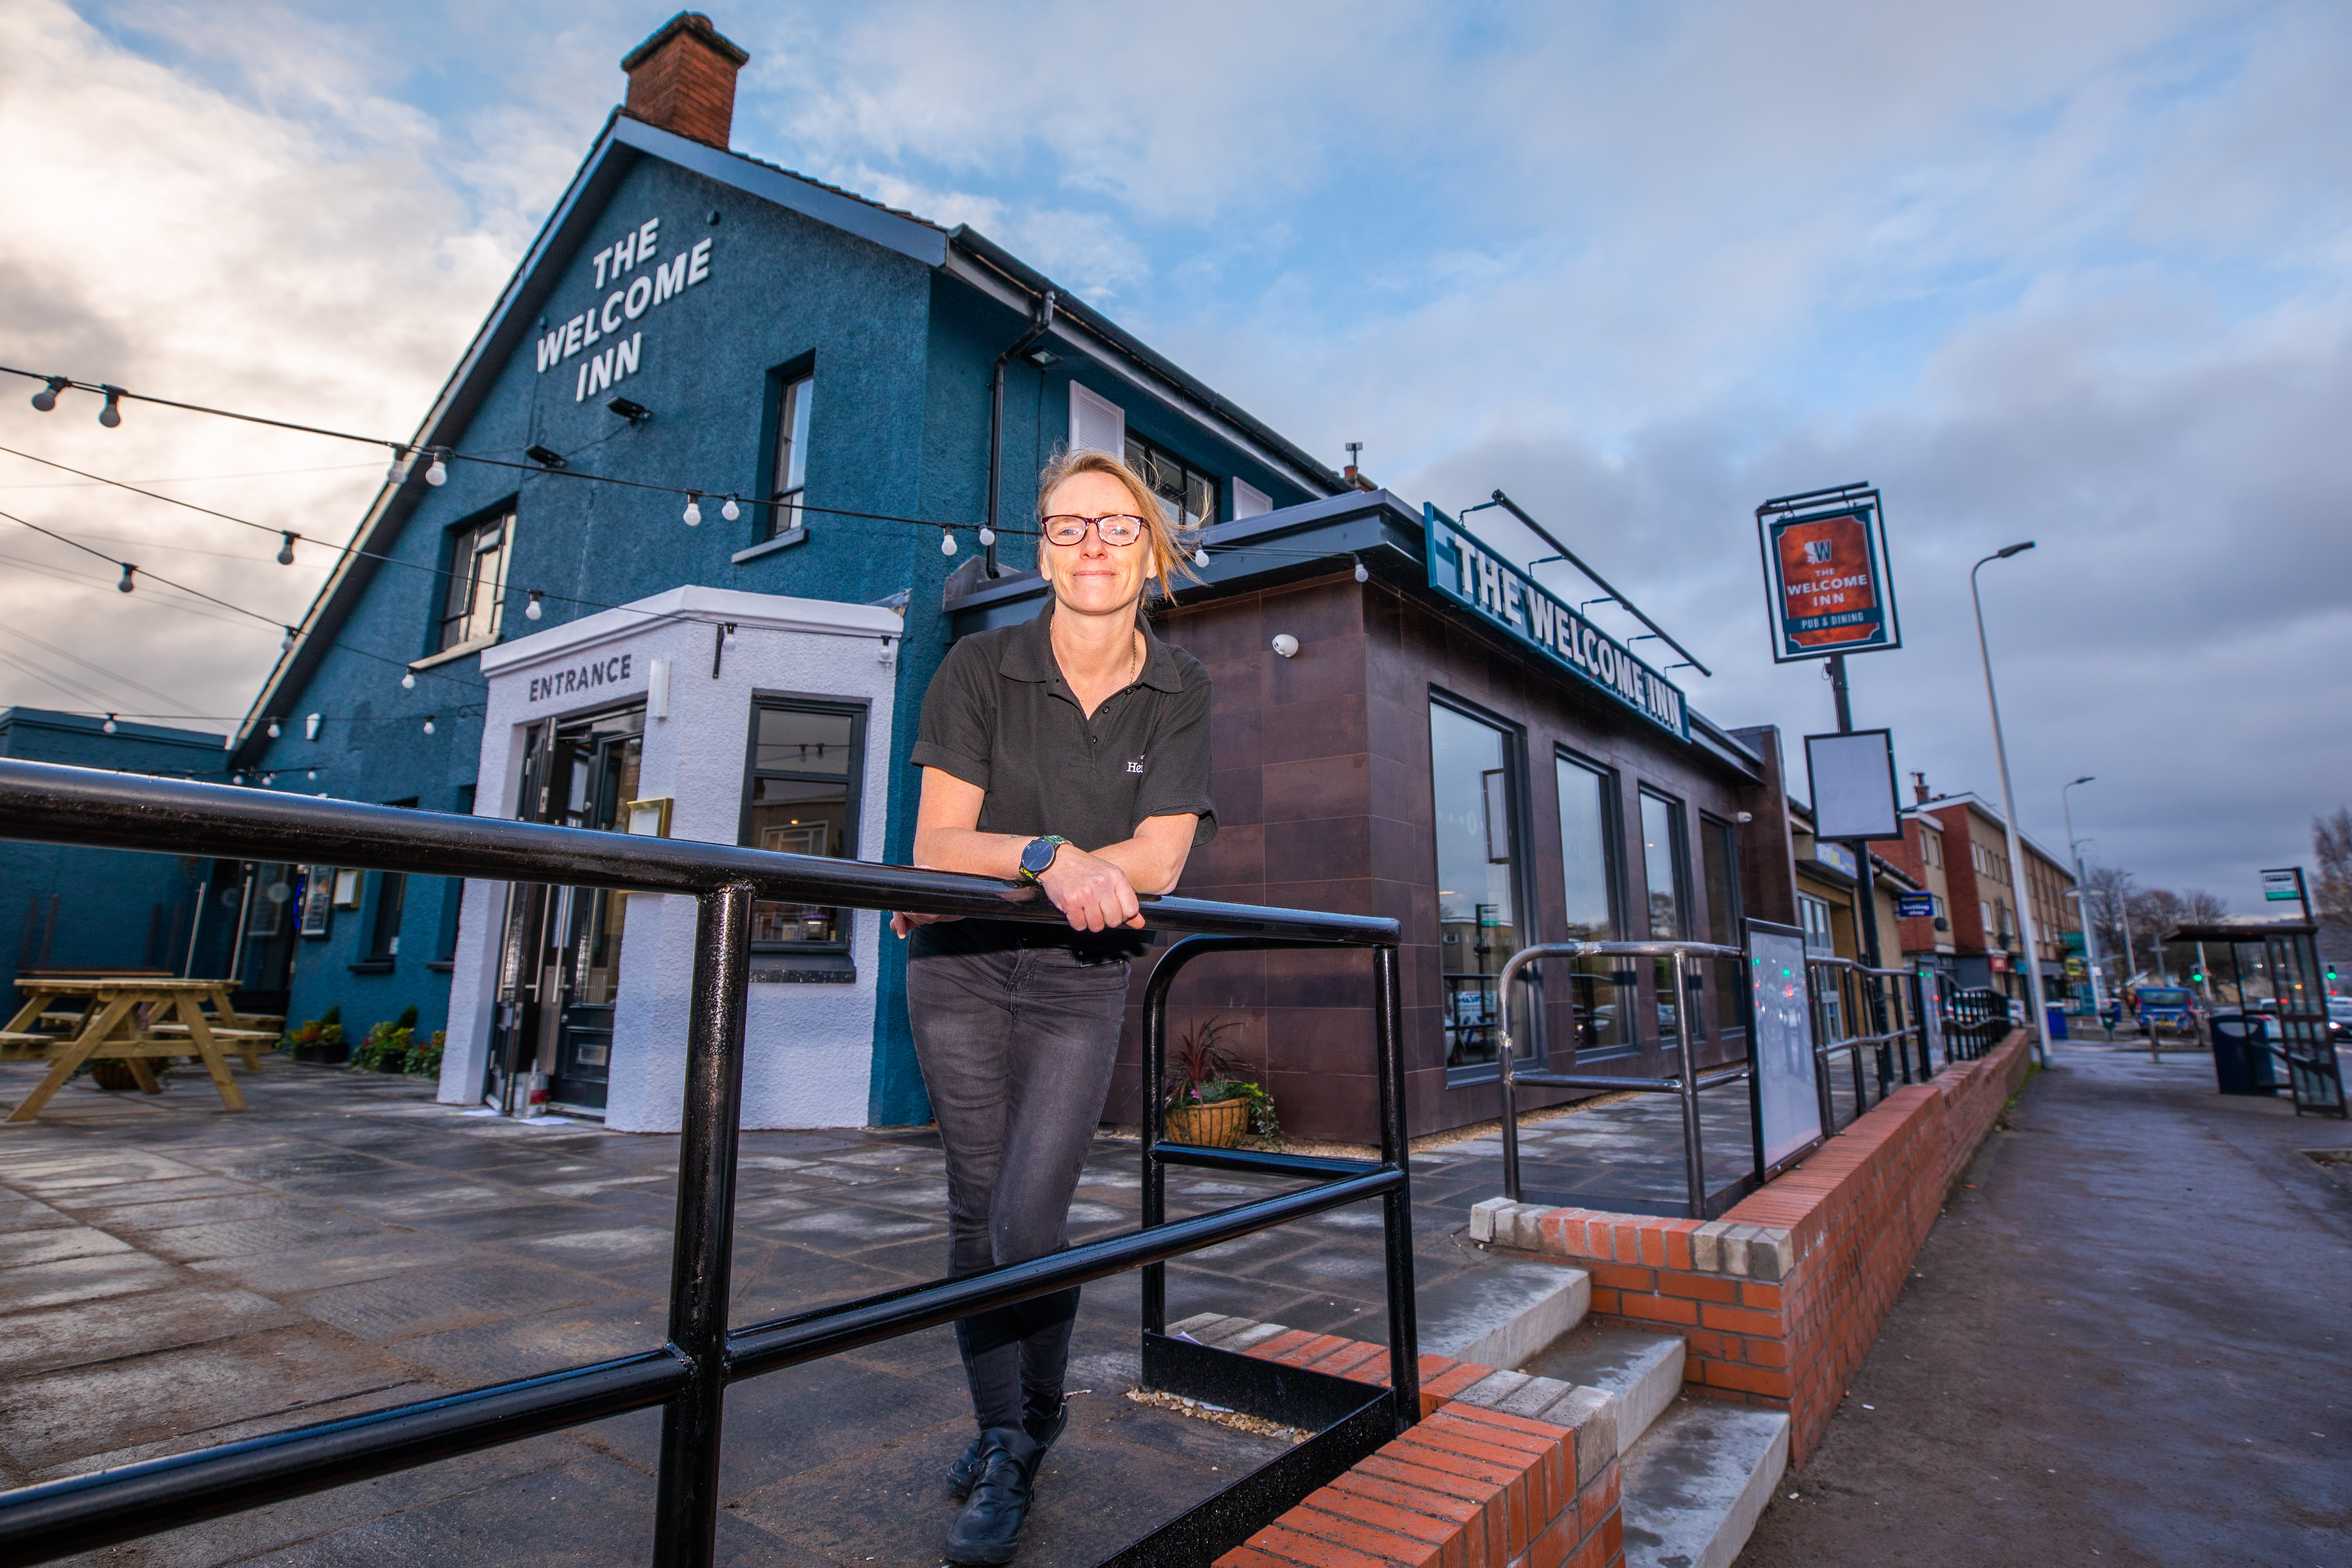 Manager Debbie Little is delighted with the relaunched Welcome Inn, Rannoch Road, Perth